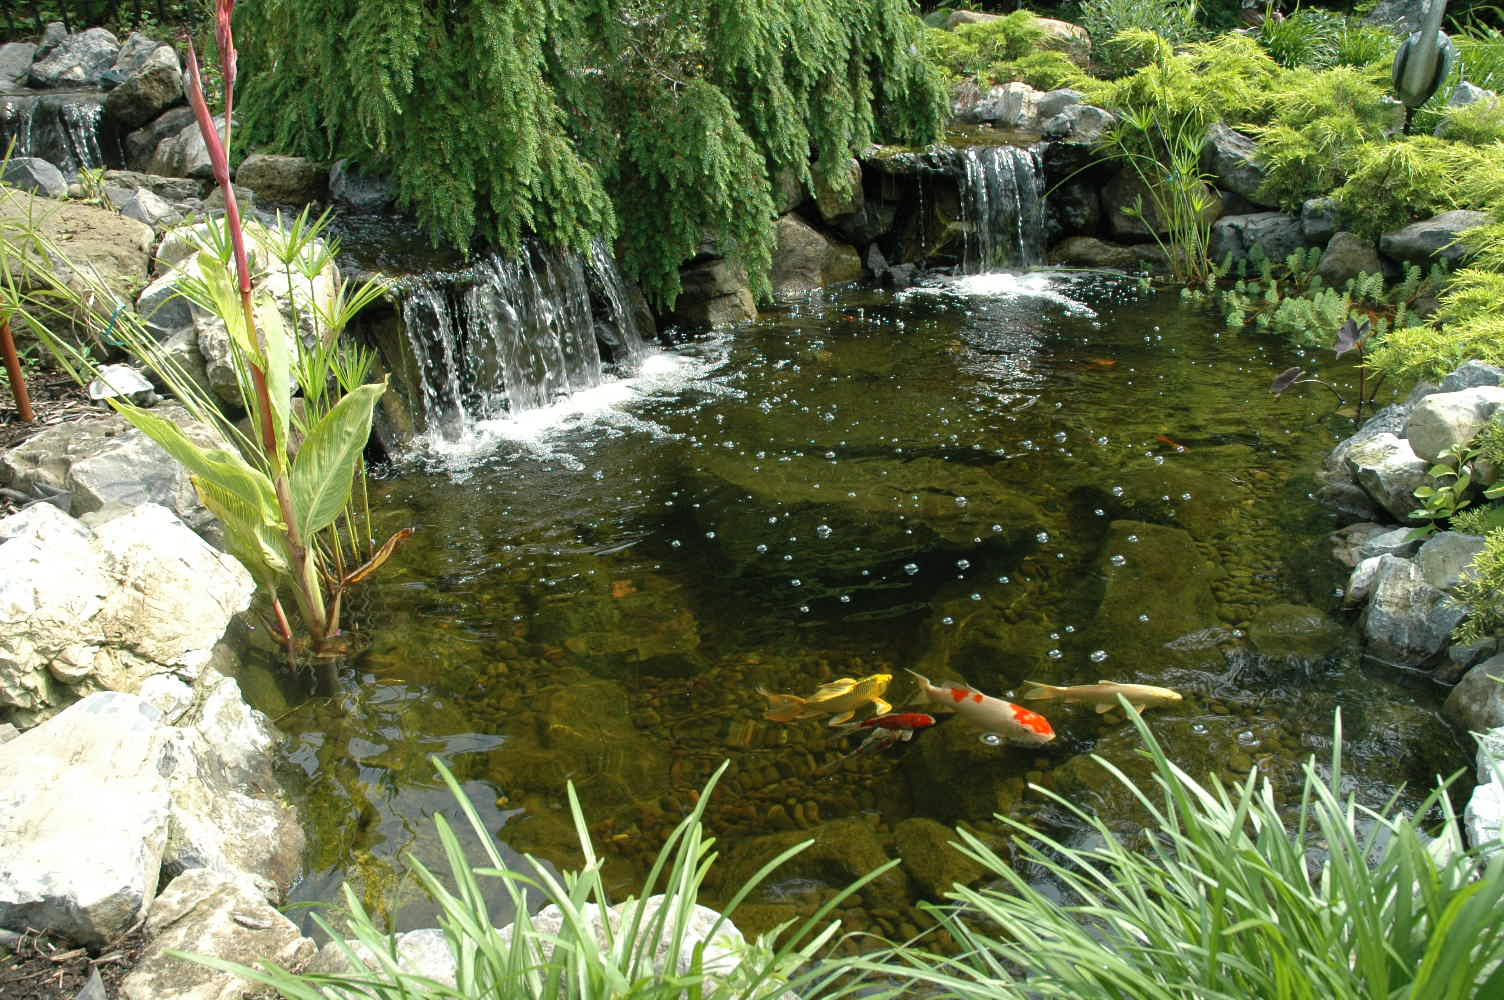 are koi carp difficult to keep in backyard ponds